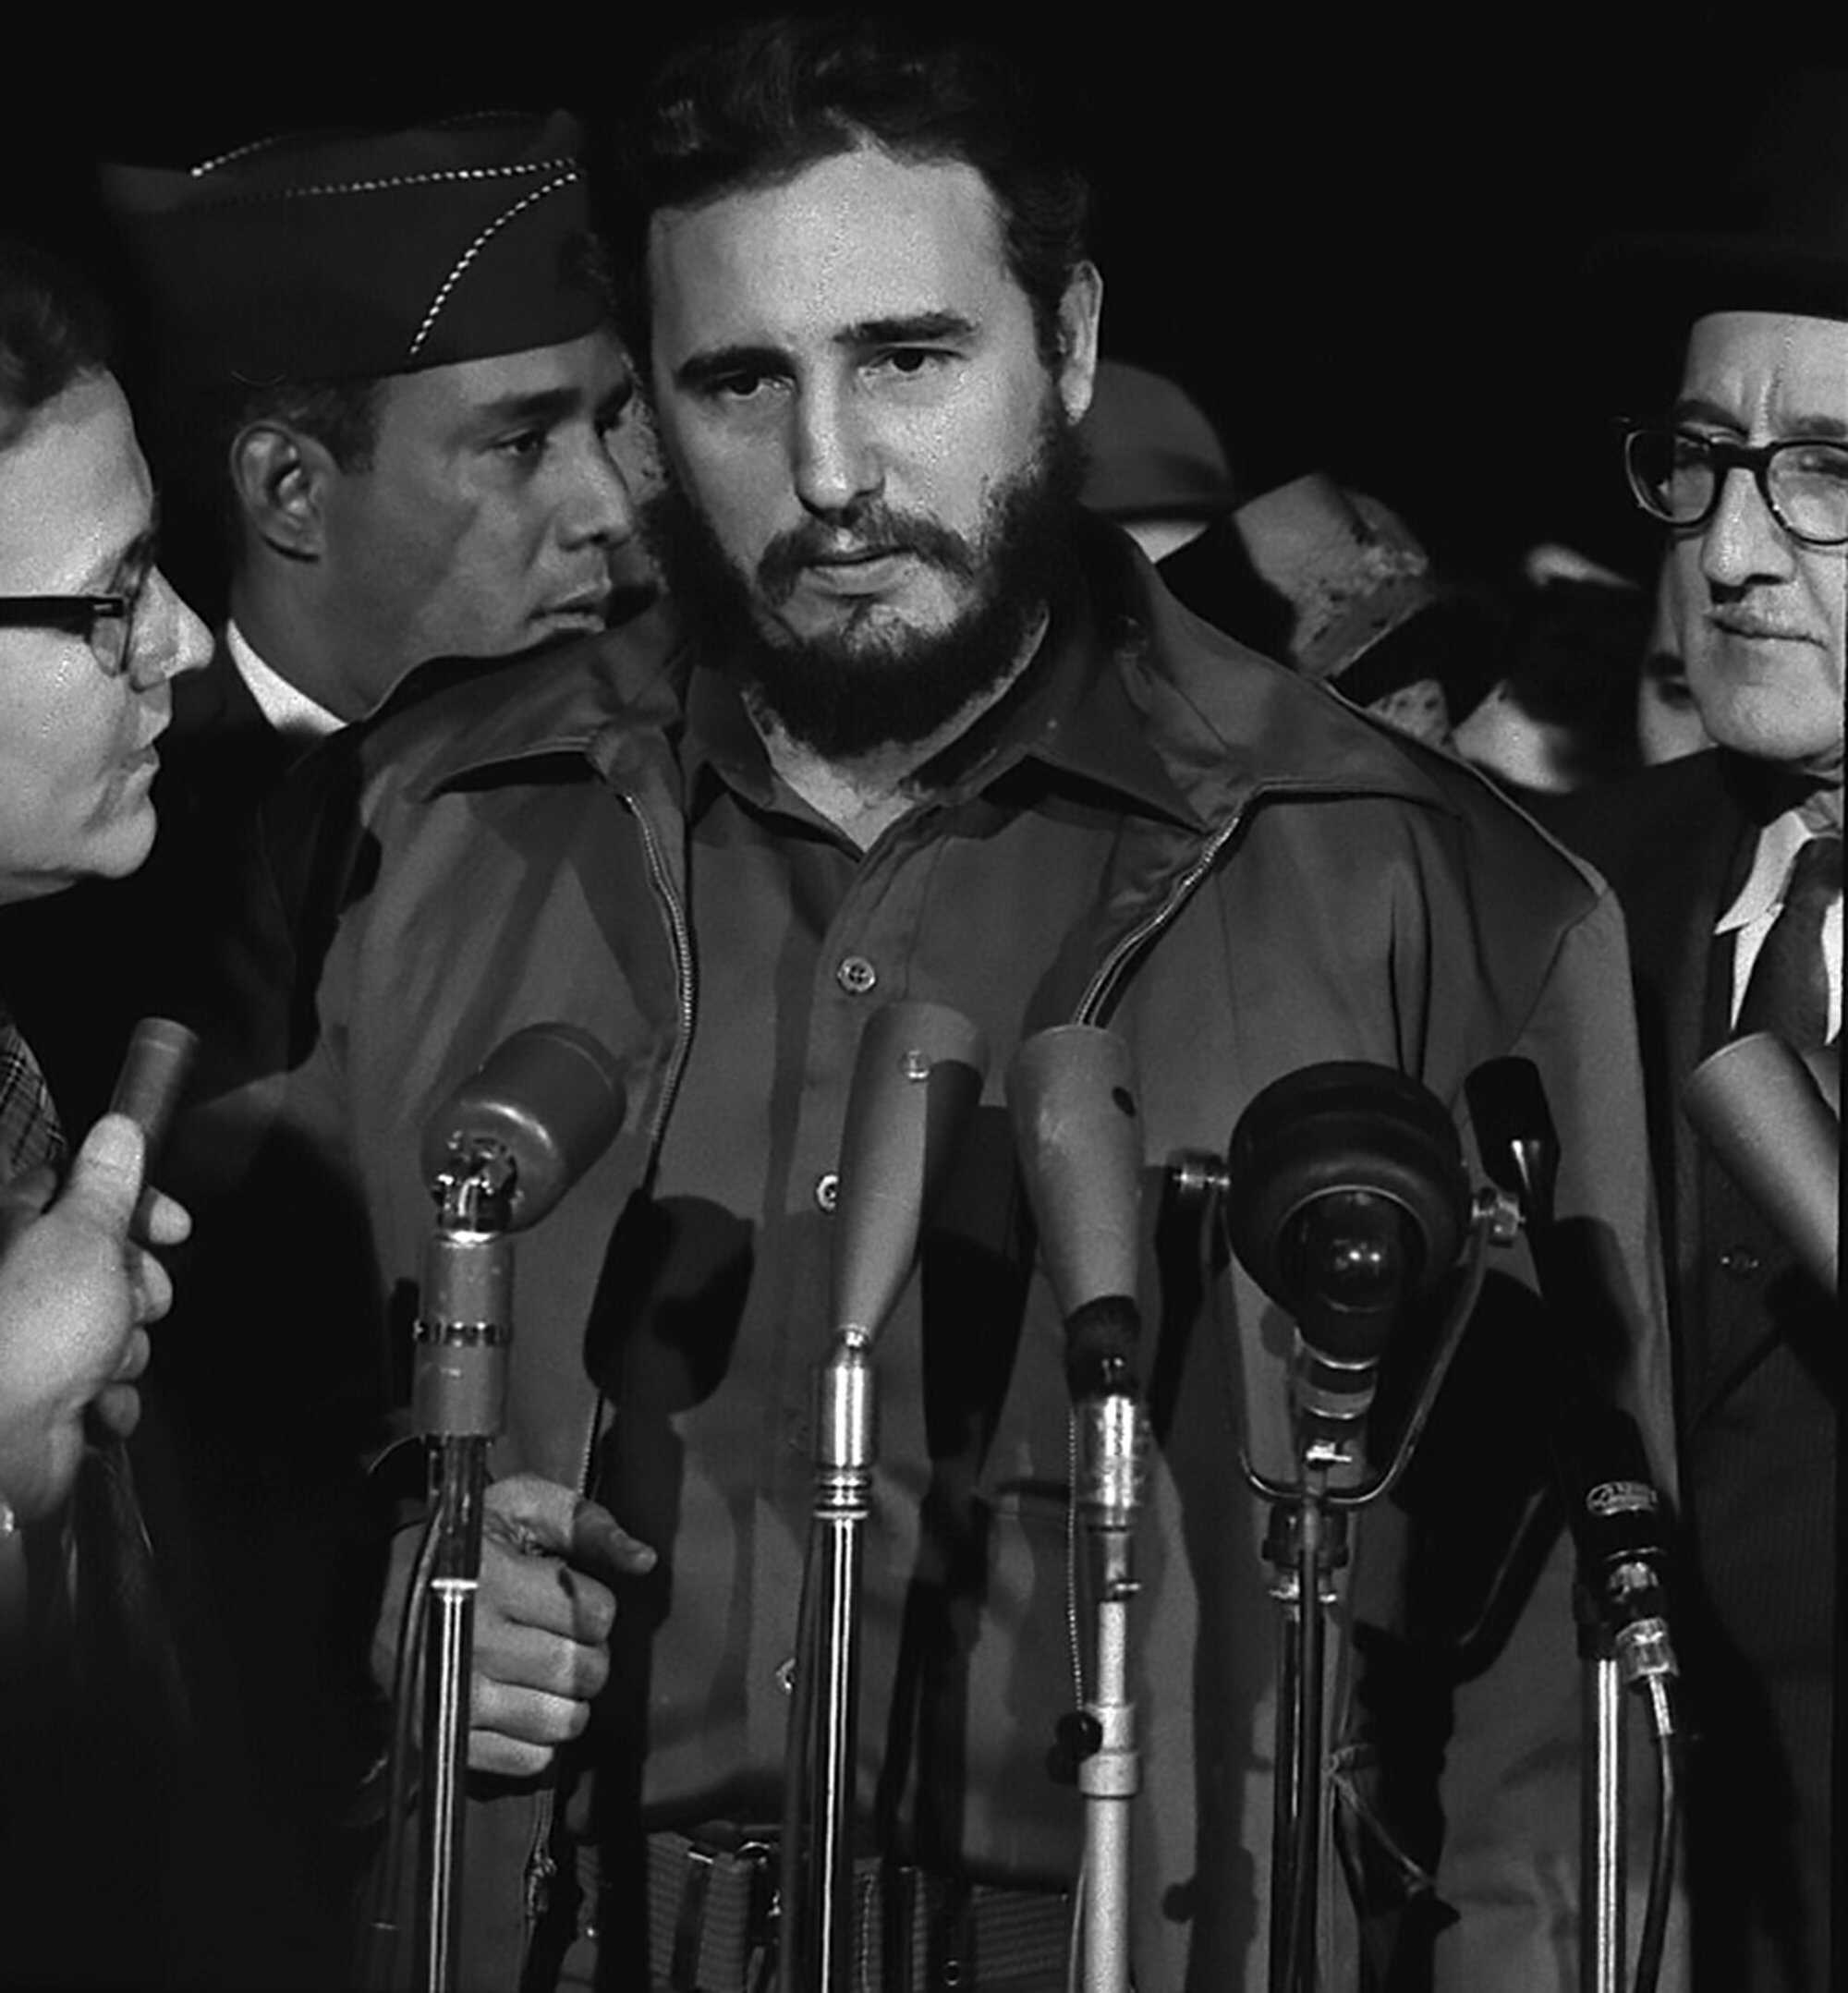 Castro-Fidel-arrives-MATS-Terminal,-Washington,-D.C.-LOC-1959.jpg